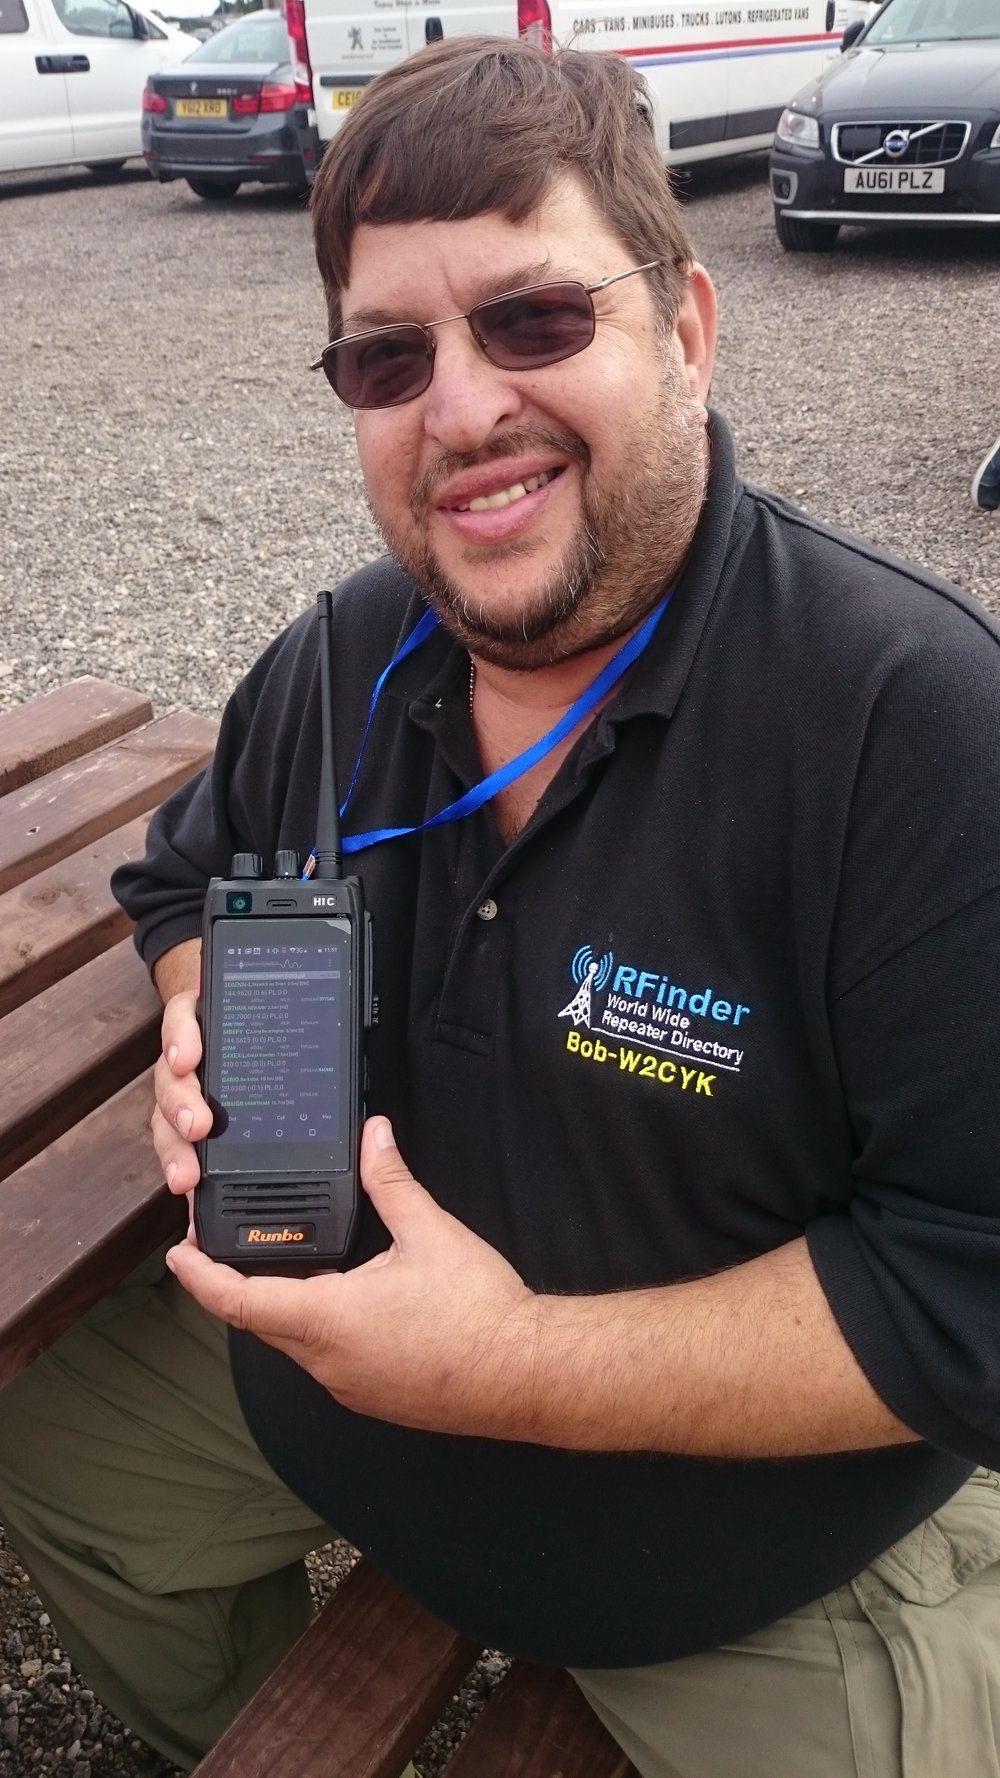 Robert Greenberg W2CYK with his RFinder Android Digital Radio